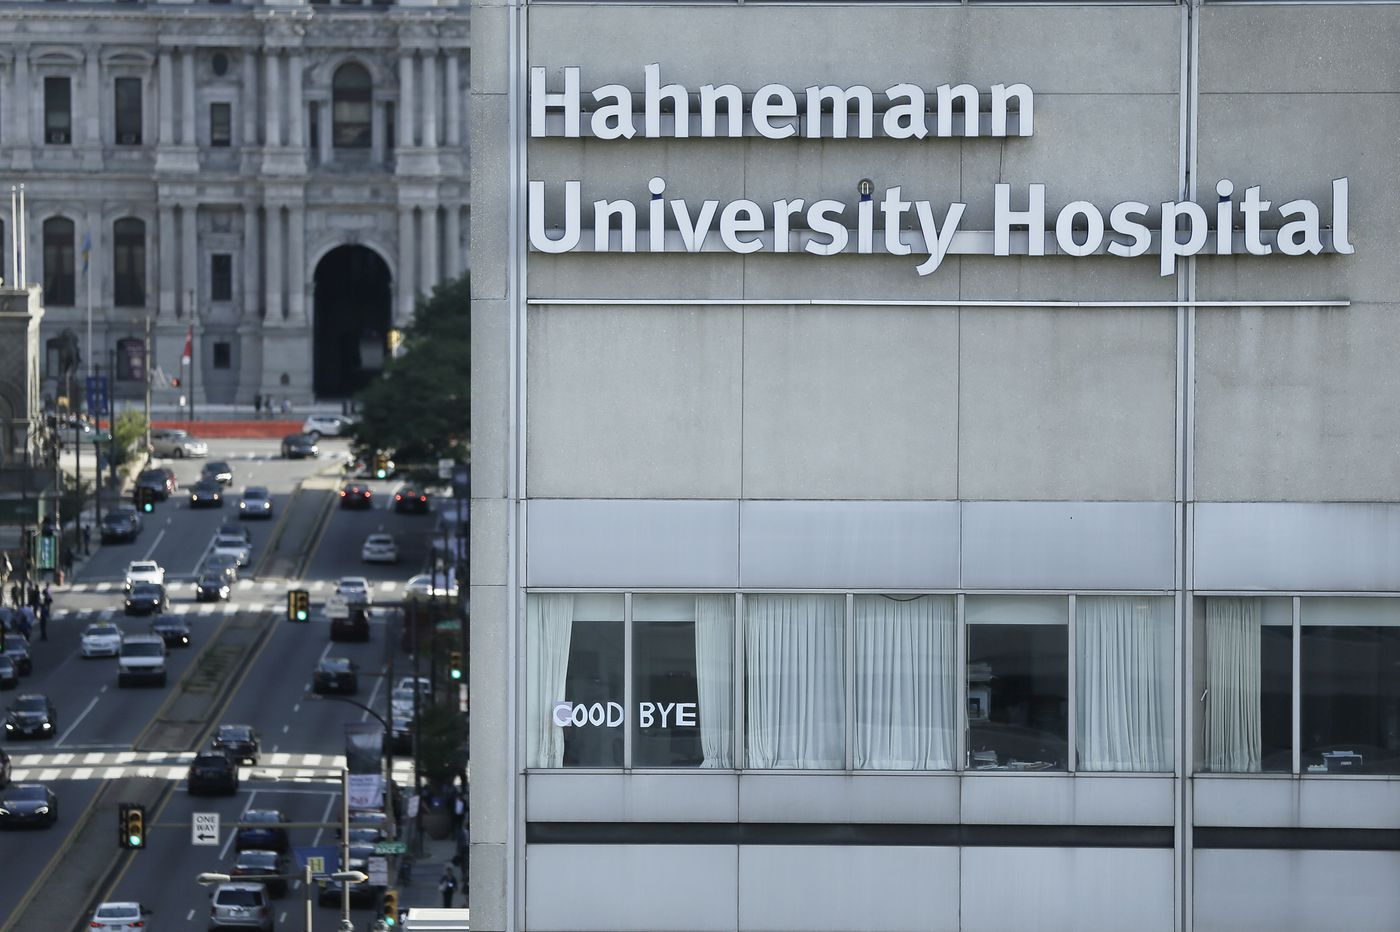 In a new twist, feds say proposed sale of Hahnemann's residency